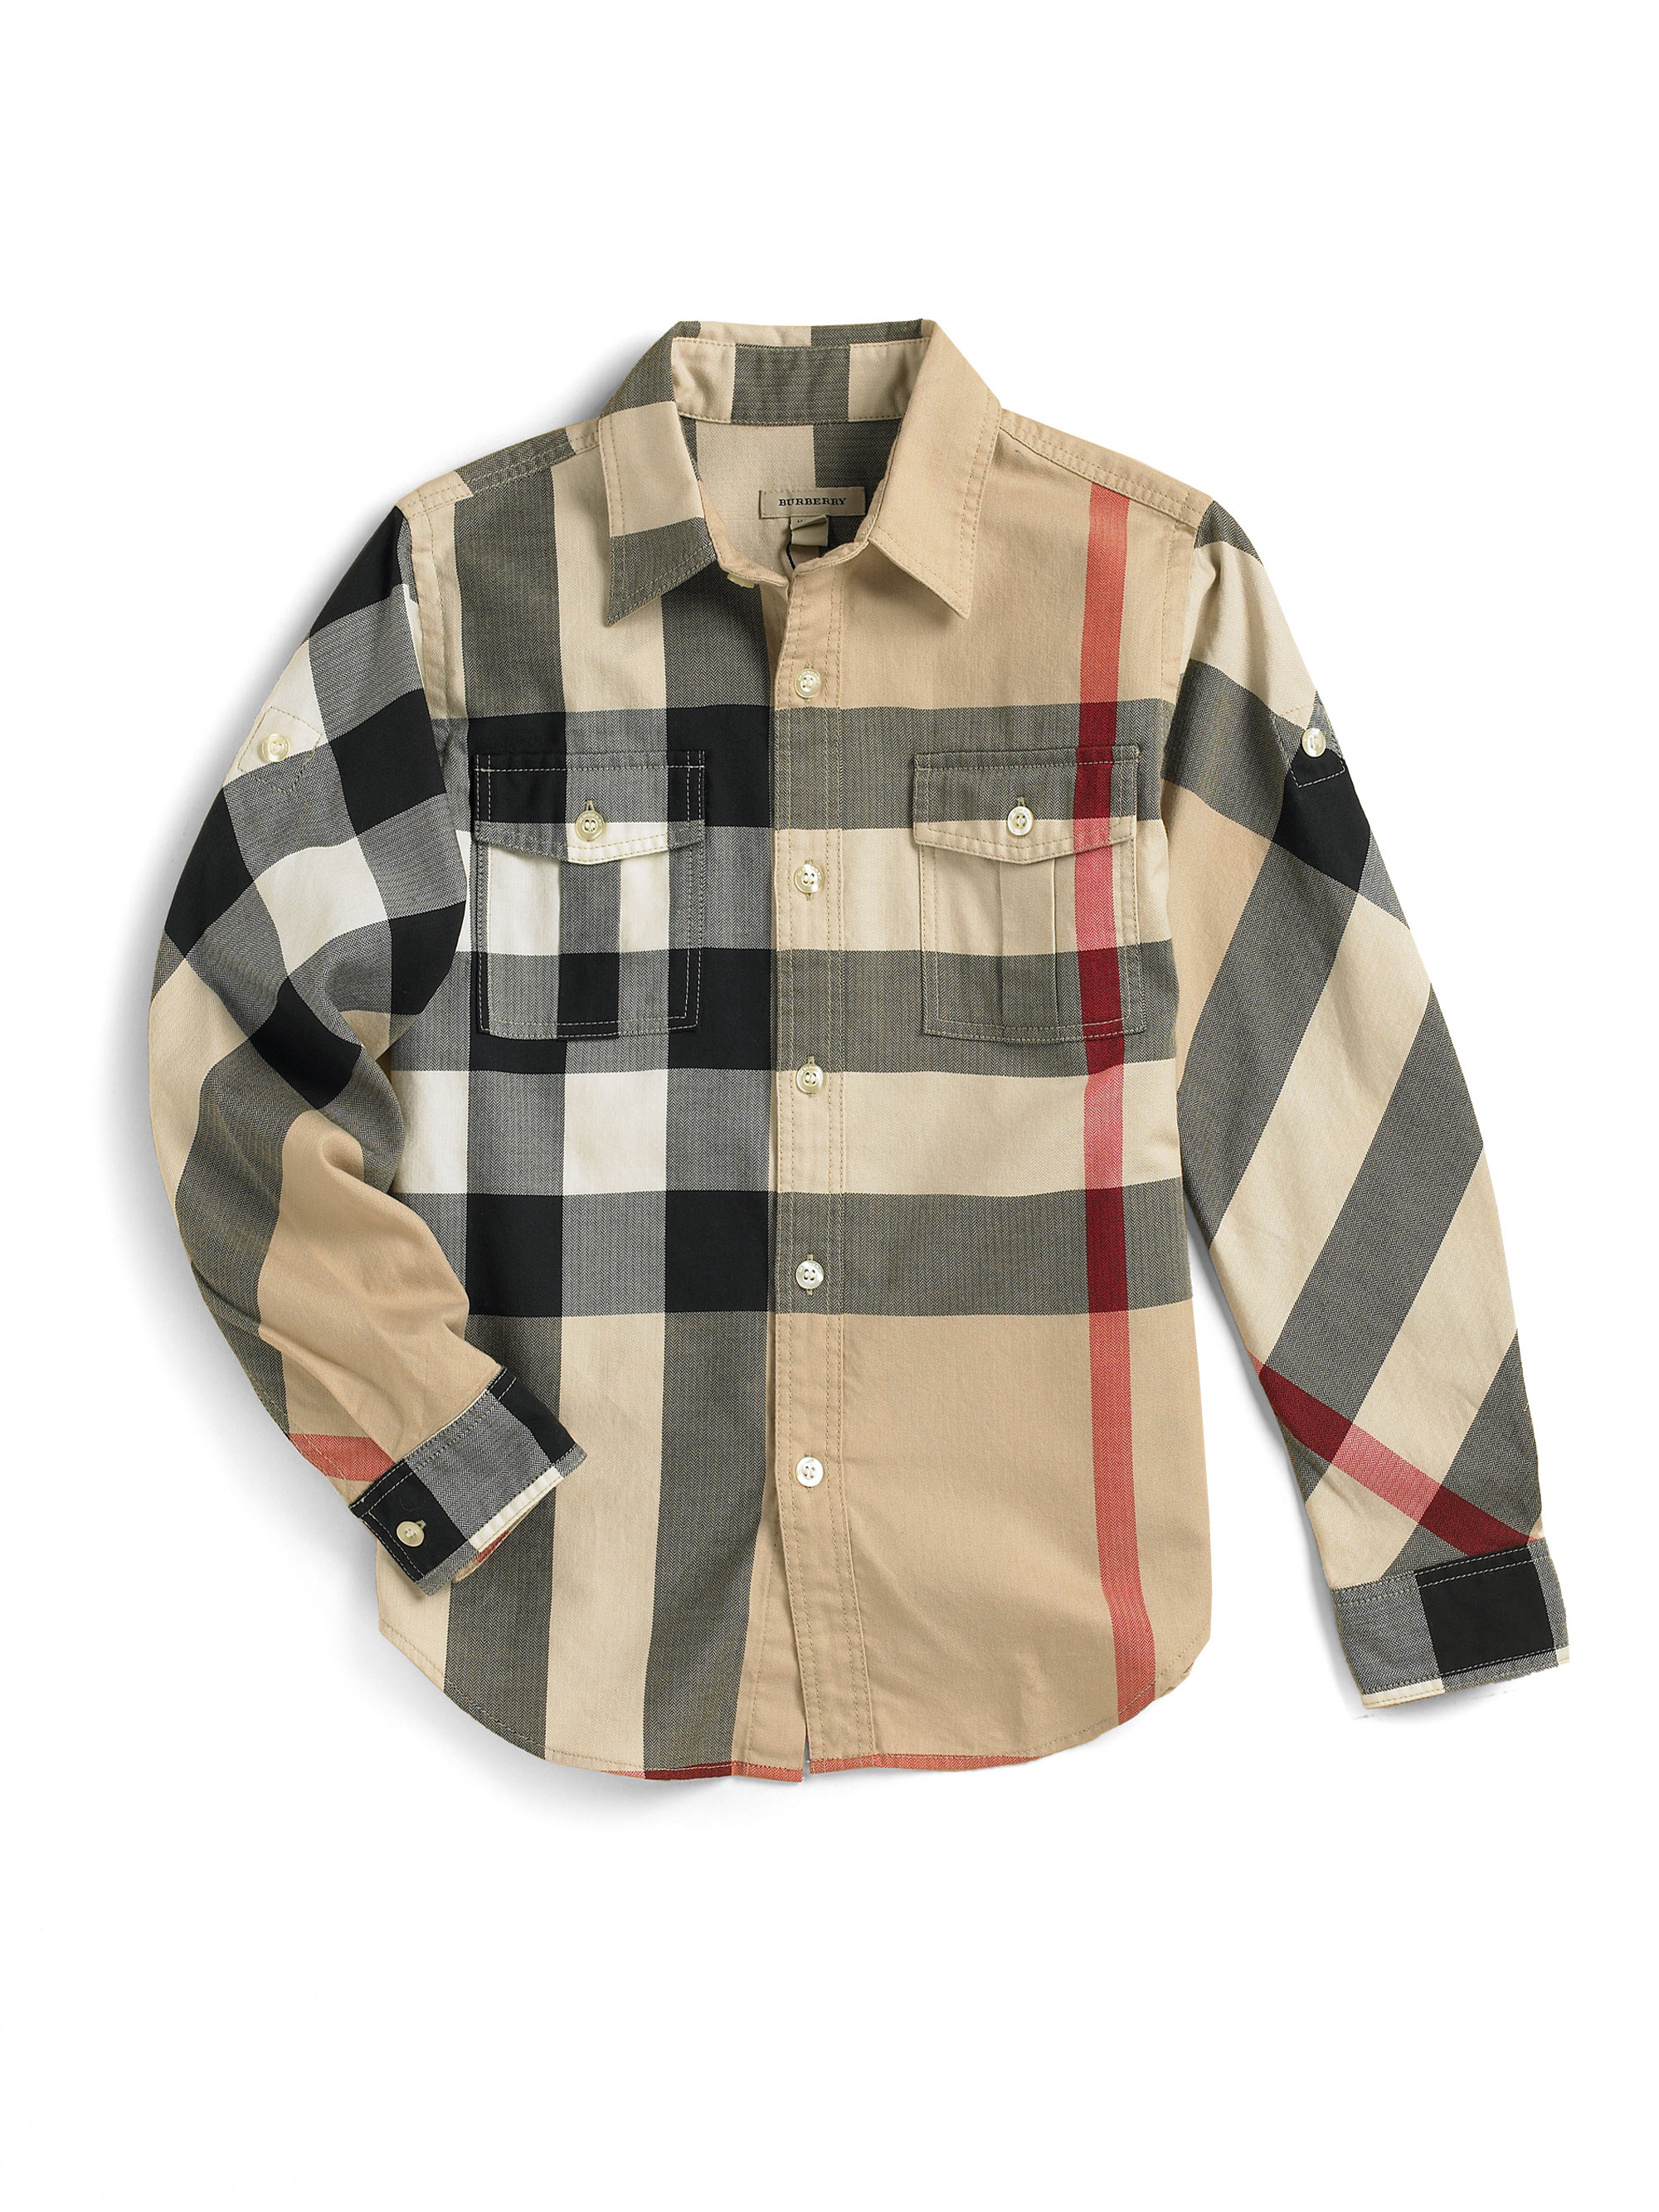 Lyst Burberry Kids in Natural for Men